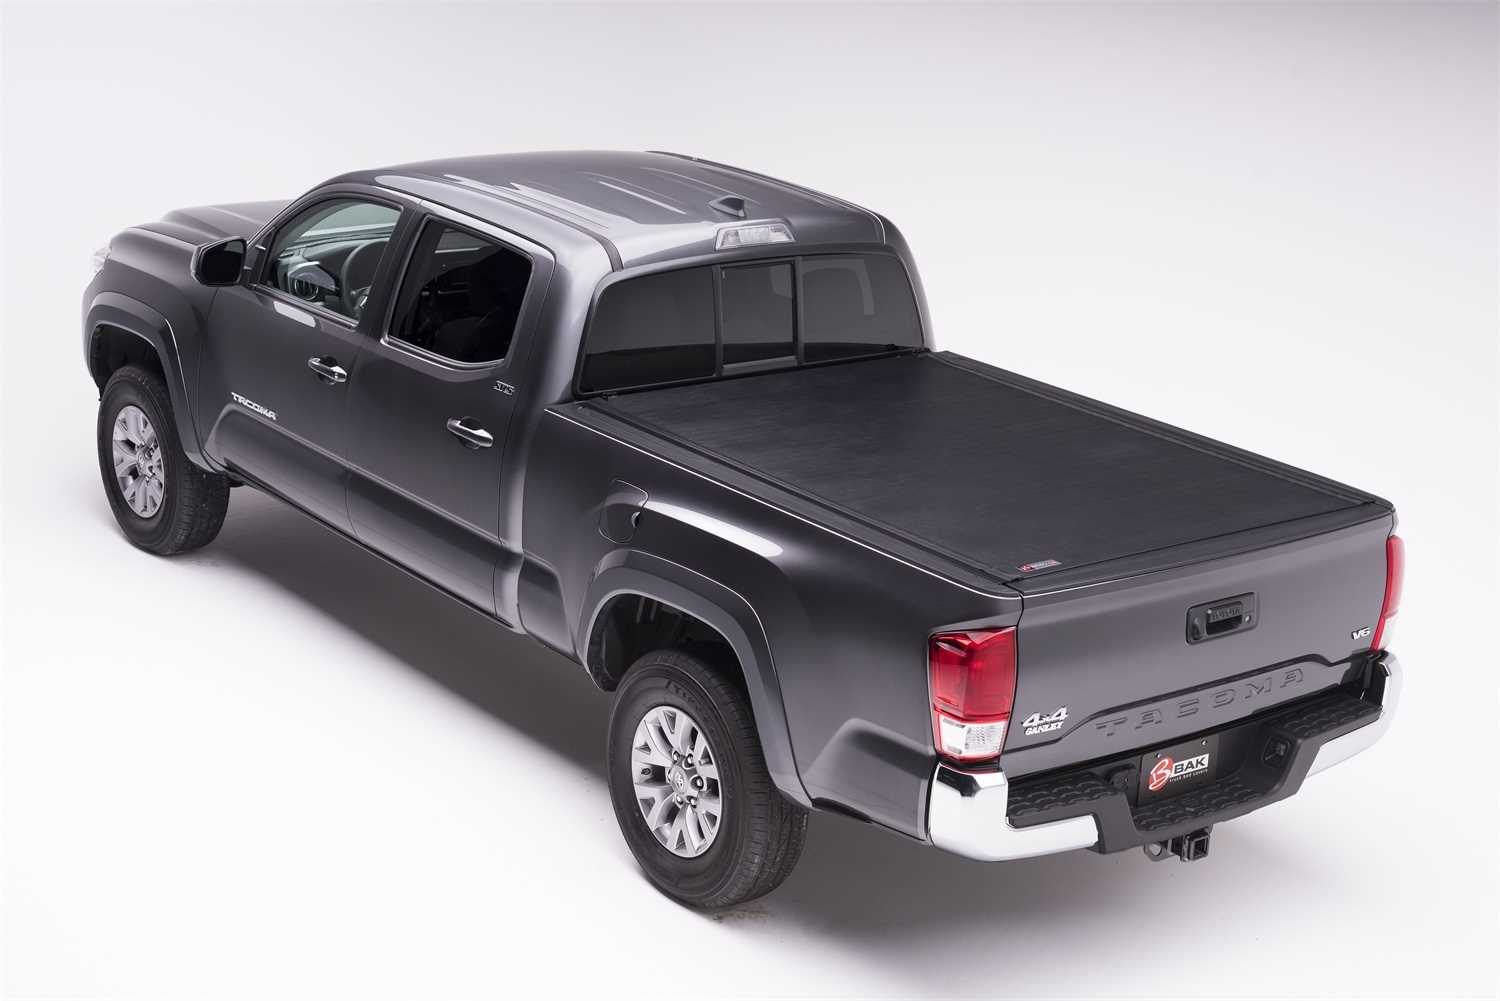 Rolling Truck Bed Covers >> 39407 Bak Industries Revolver X2 Hard Rolling Truck Bed Cover 39407